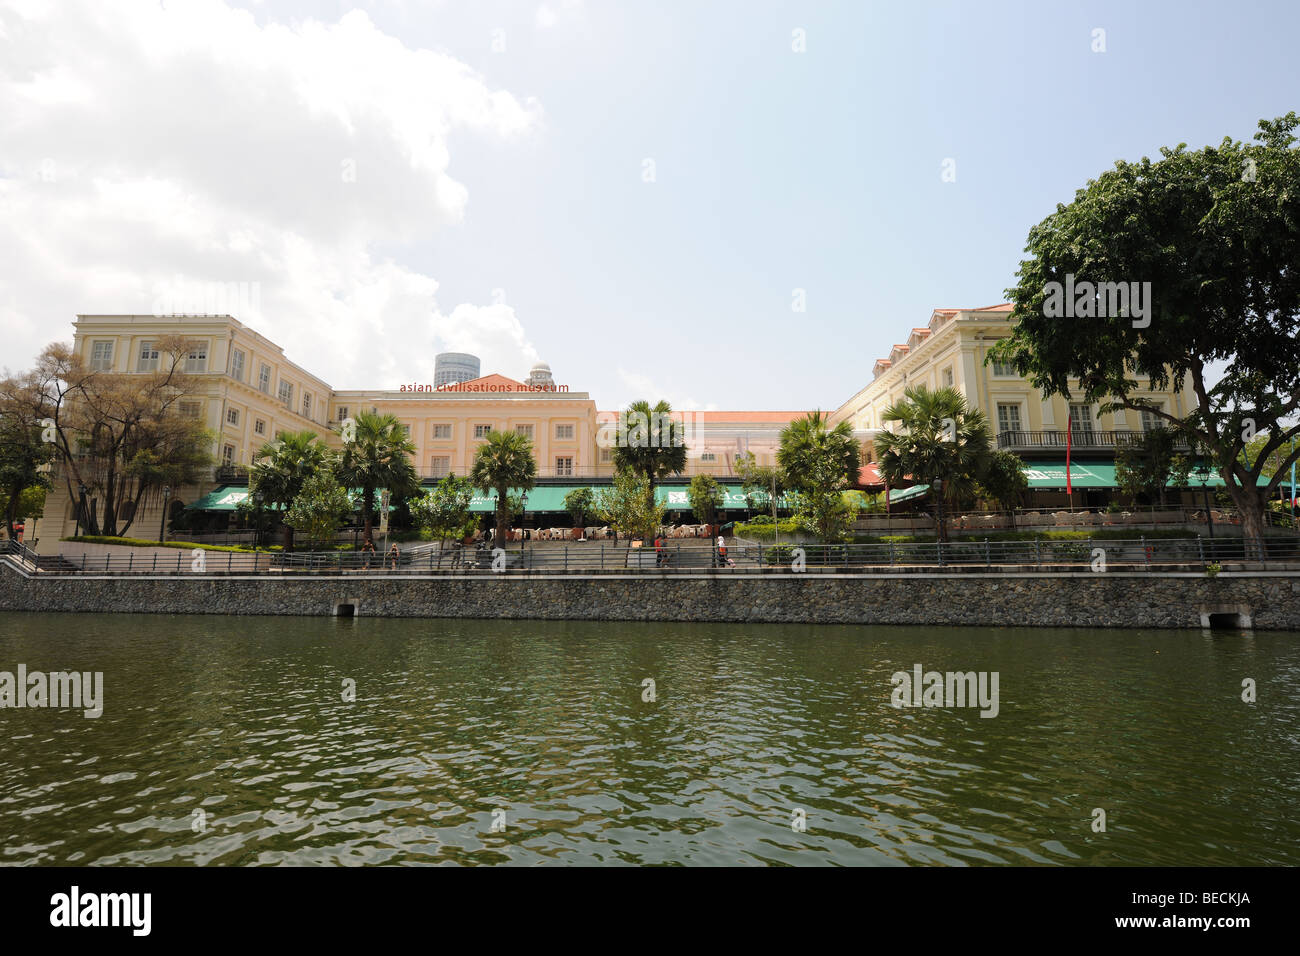 Asian Civilisations Museum from the Singapore River, Singapore - Stock Image